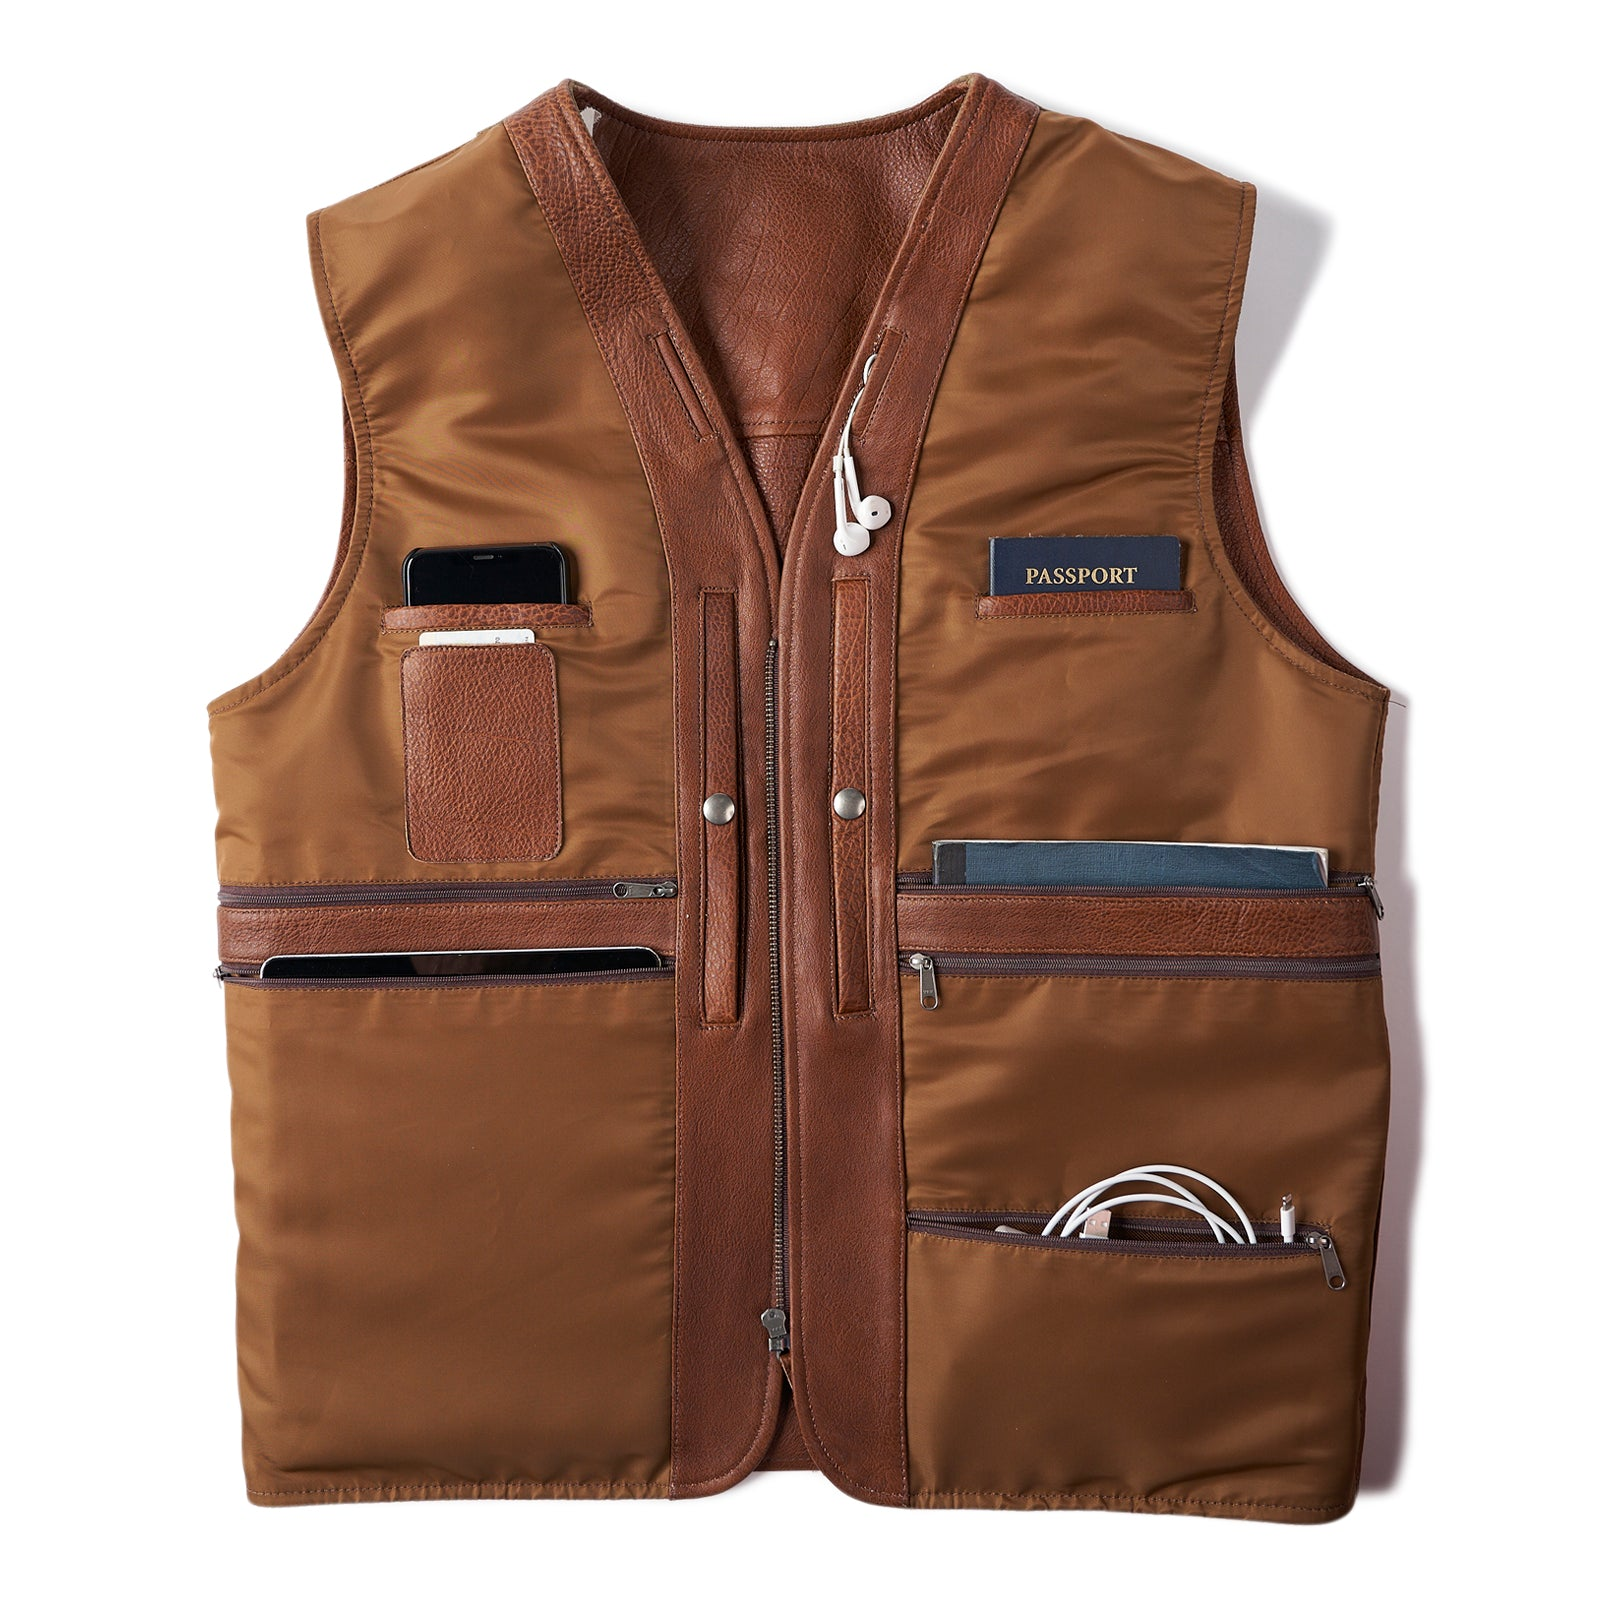 Safari Bison Travel Vest (SOLD OUT)